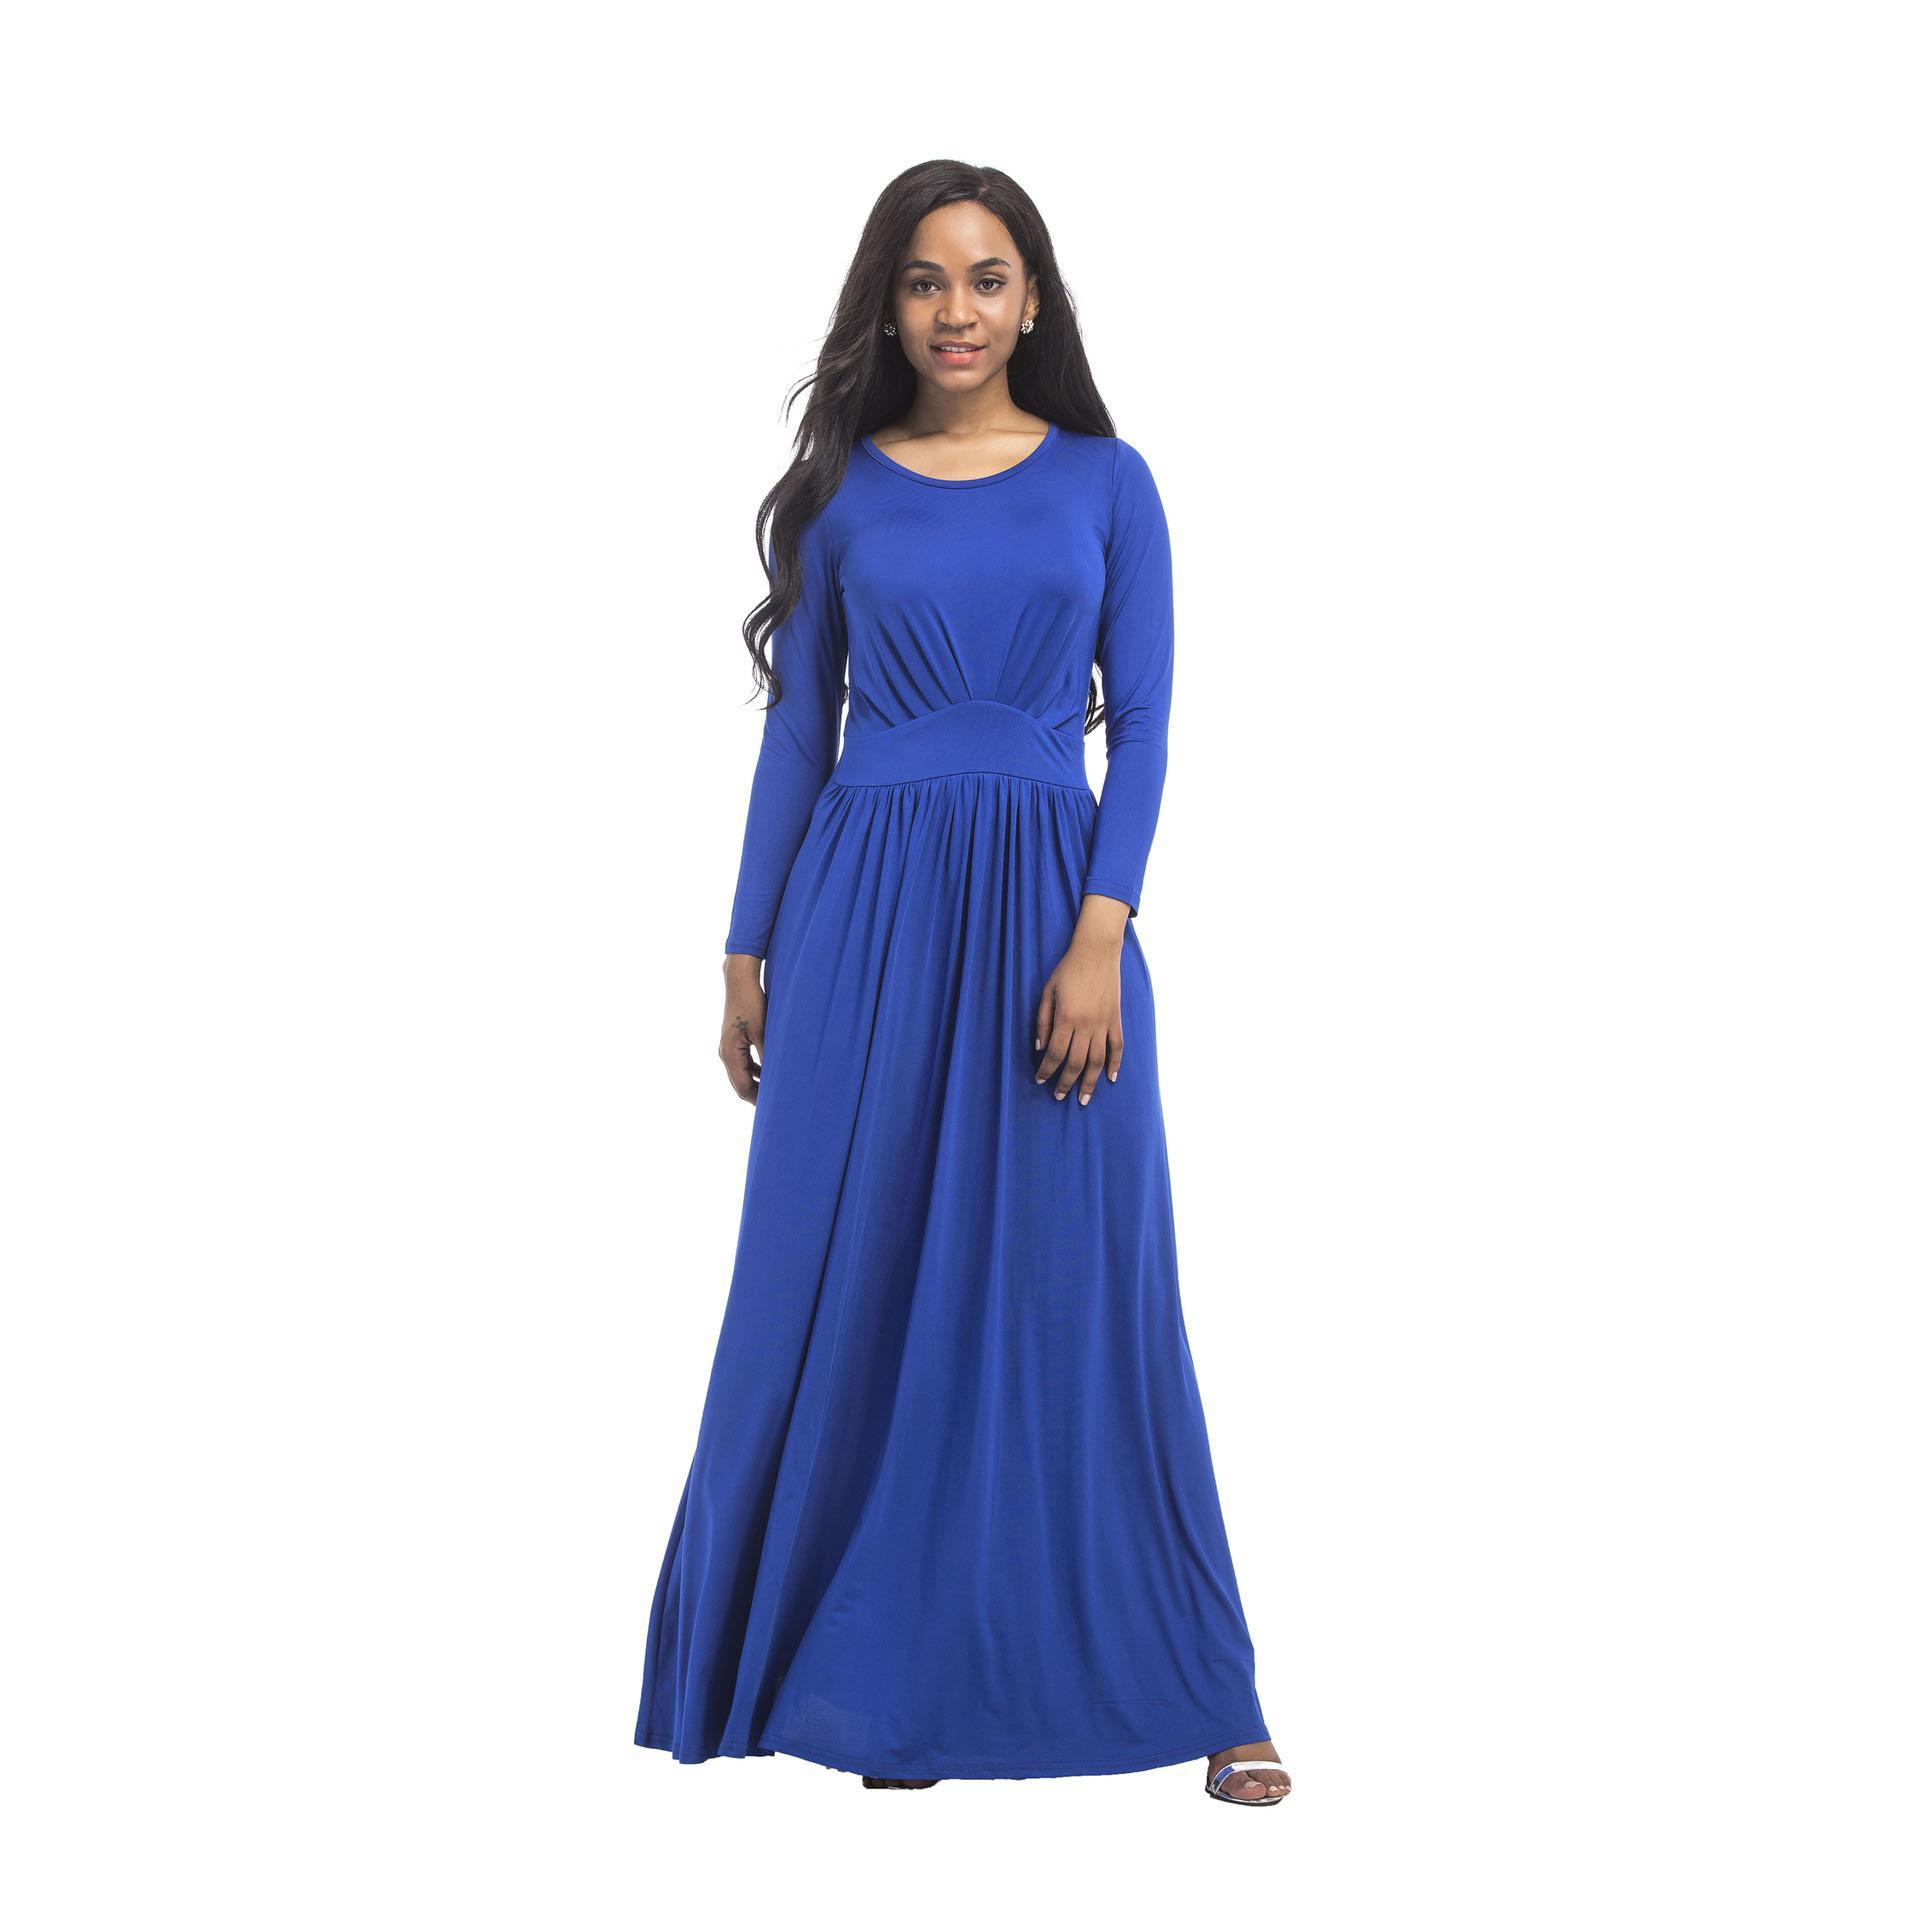 Women Long Dresses Loose Long Sleeve Autumn O Neck Casual Solid White Black Blue Party Beach Plus Size Maxi Dress